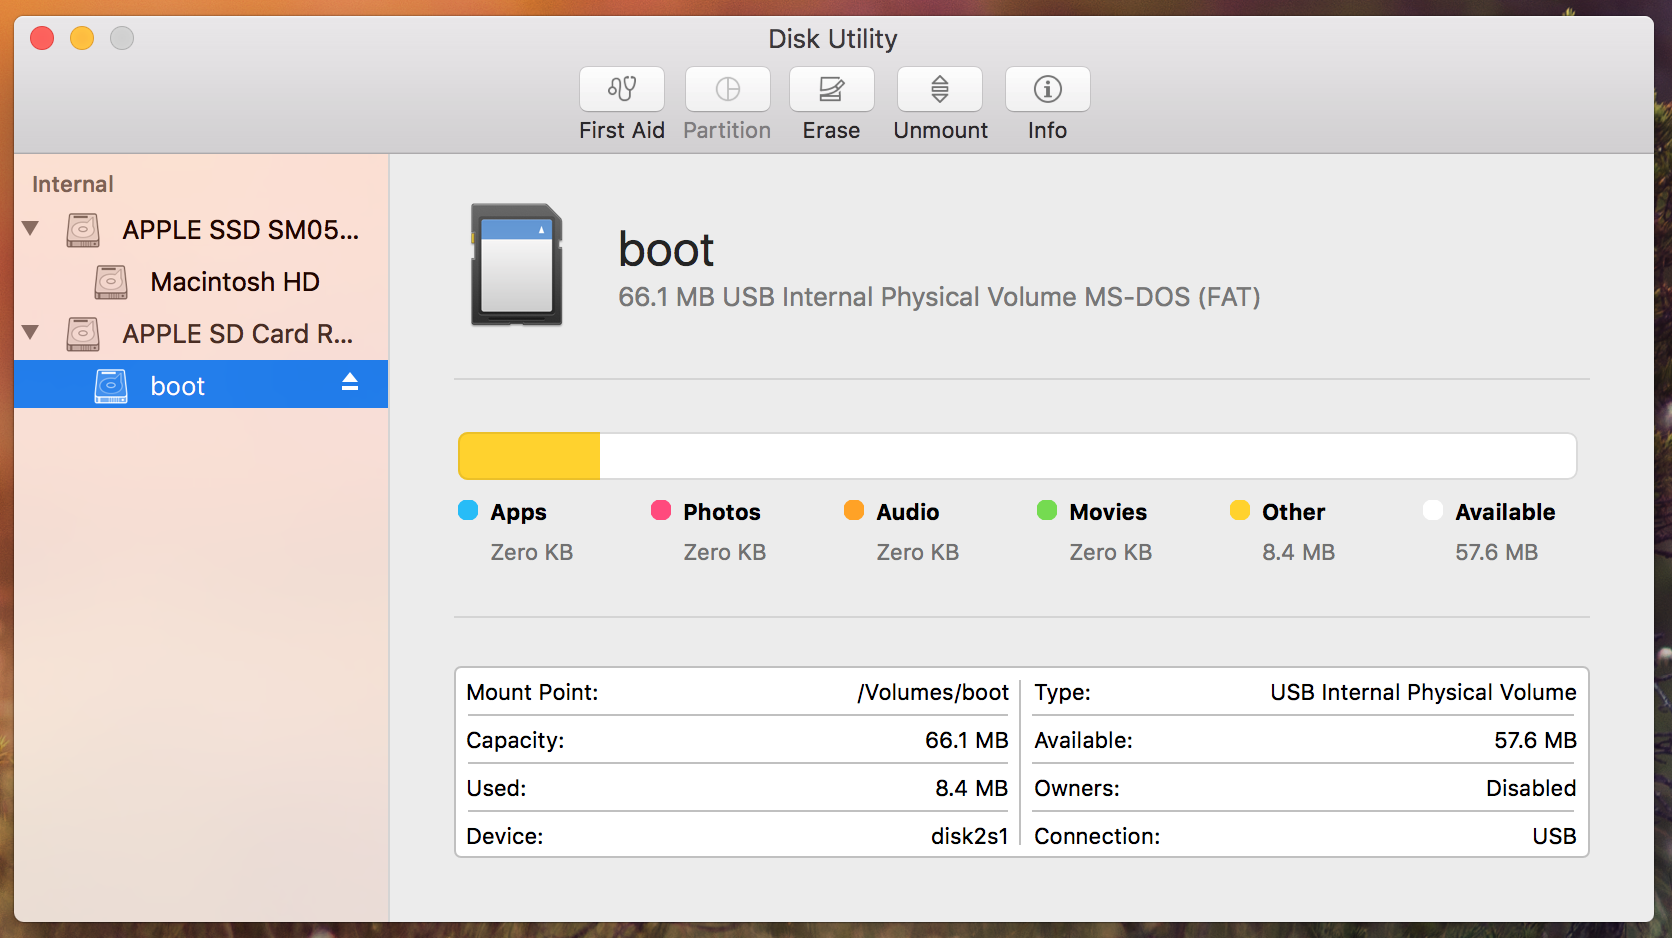 How to make a bootable usb on mac using disk utility | How